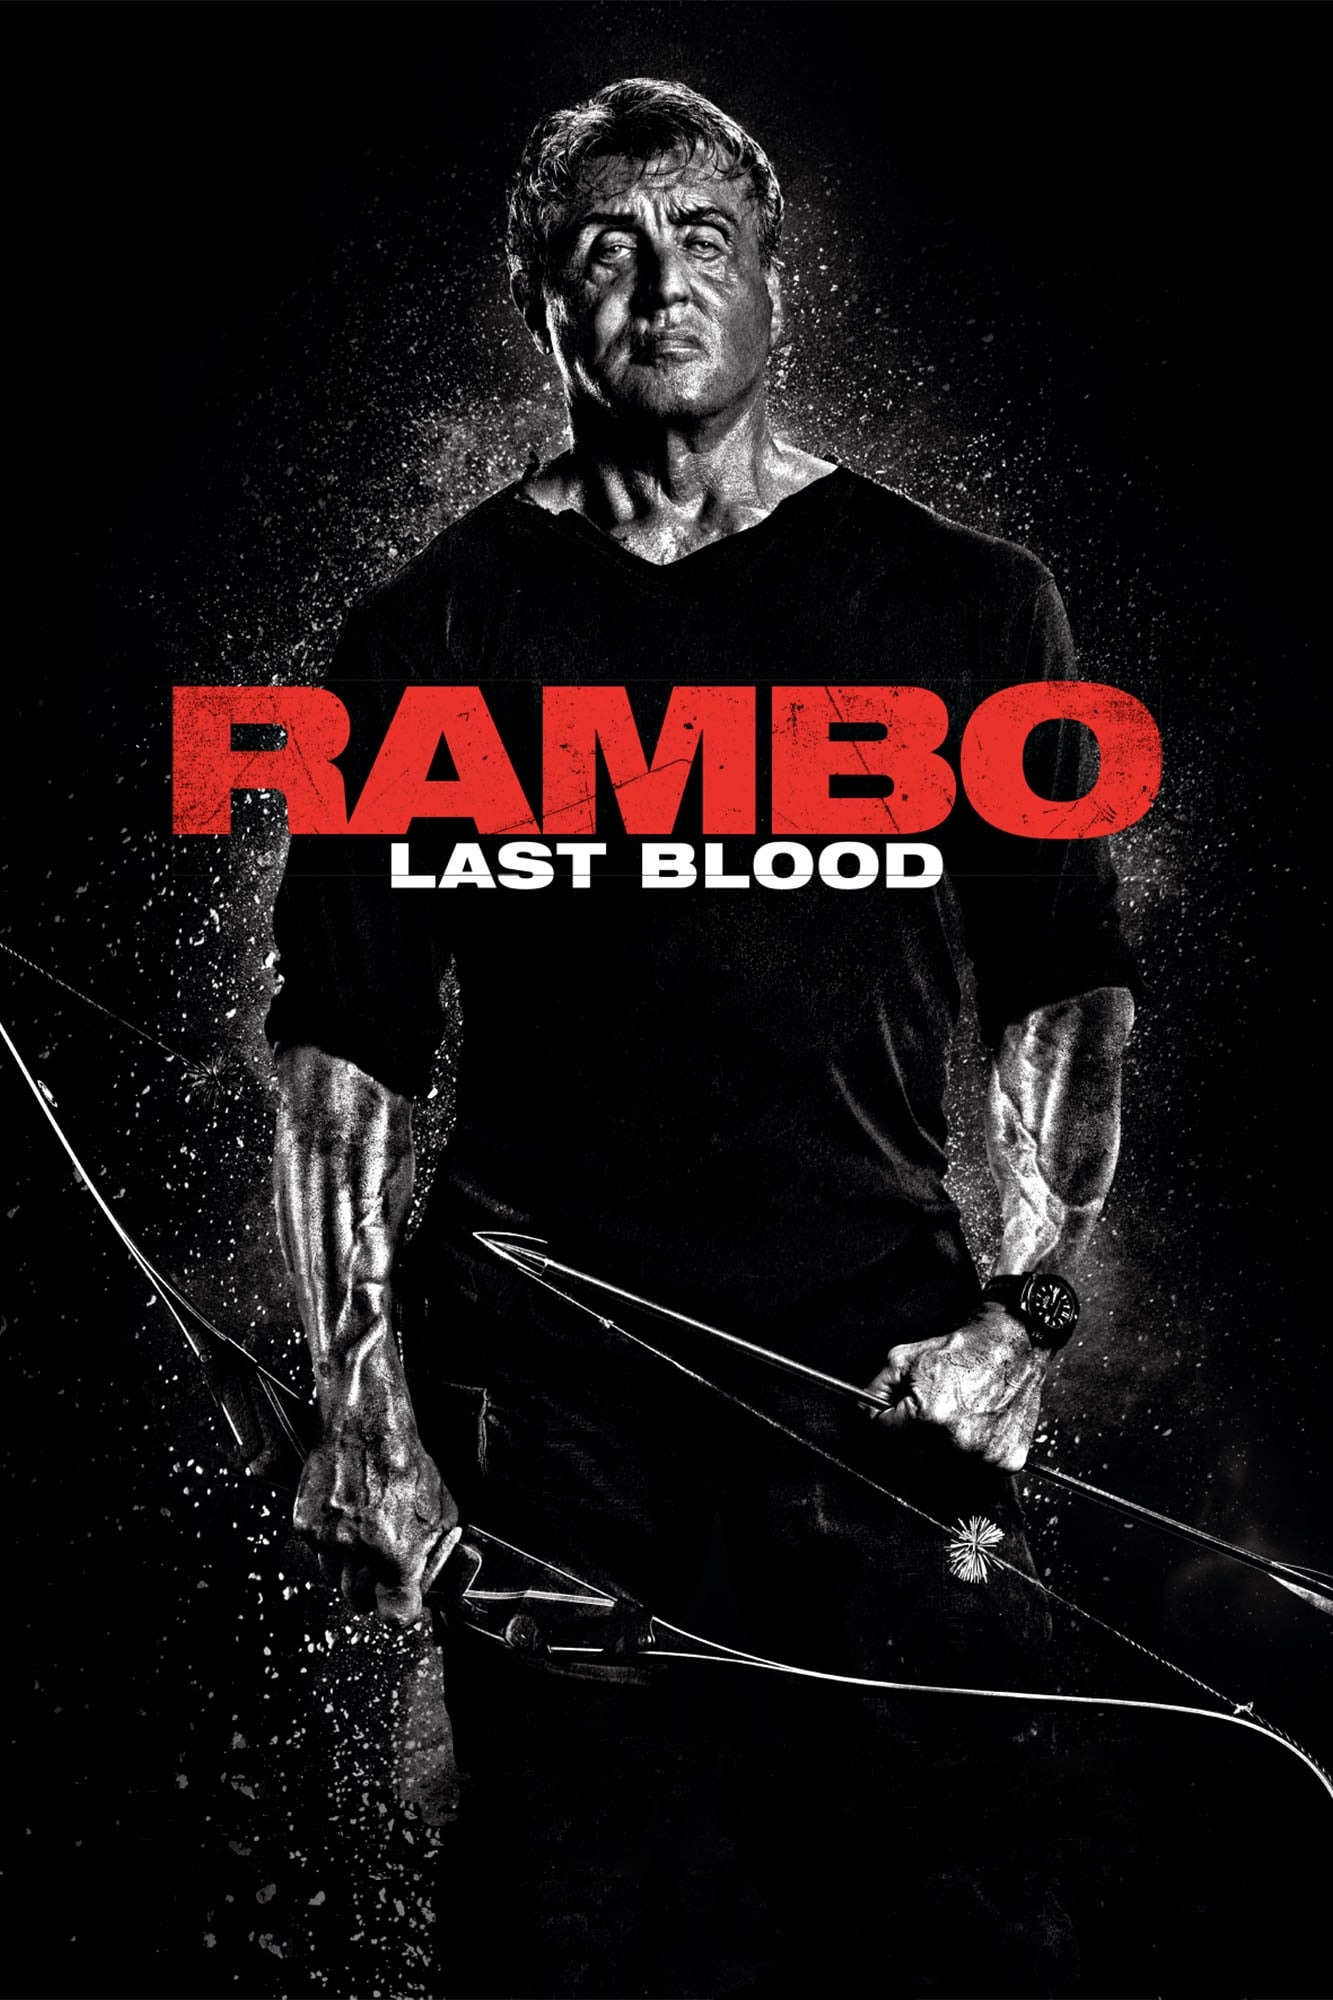 image for Rambo: Last Blood